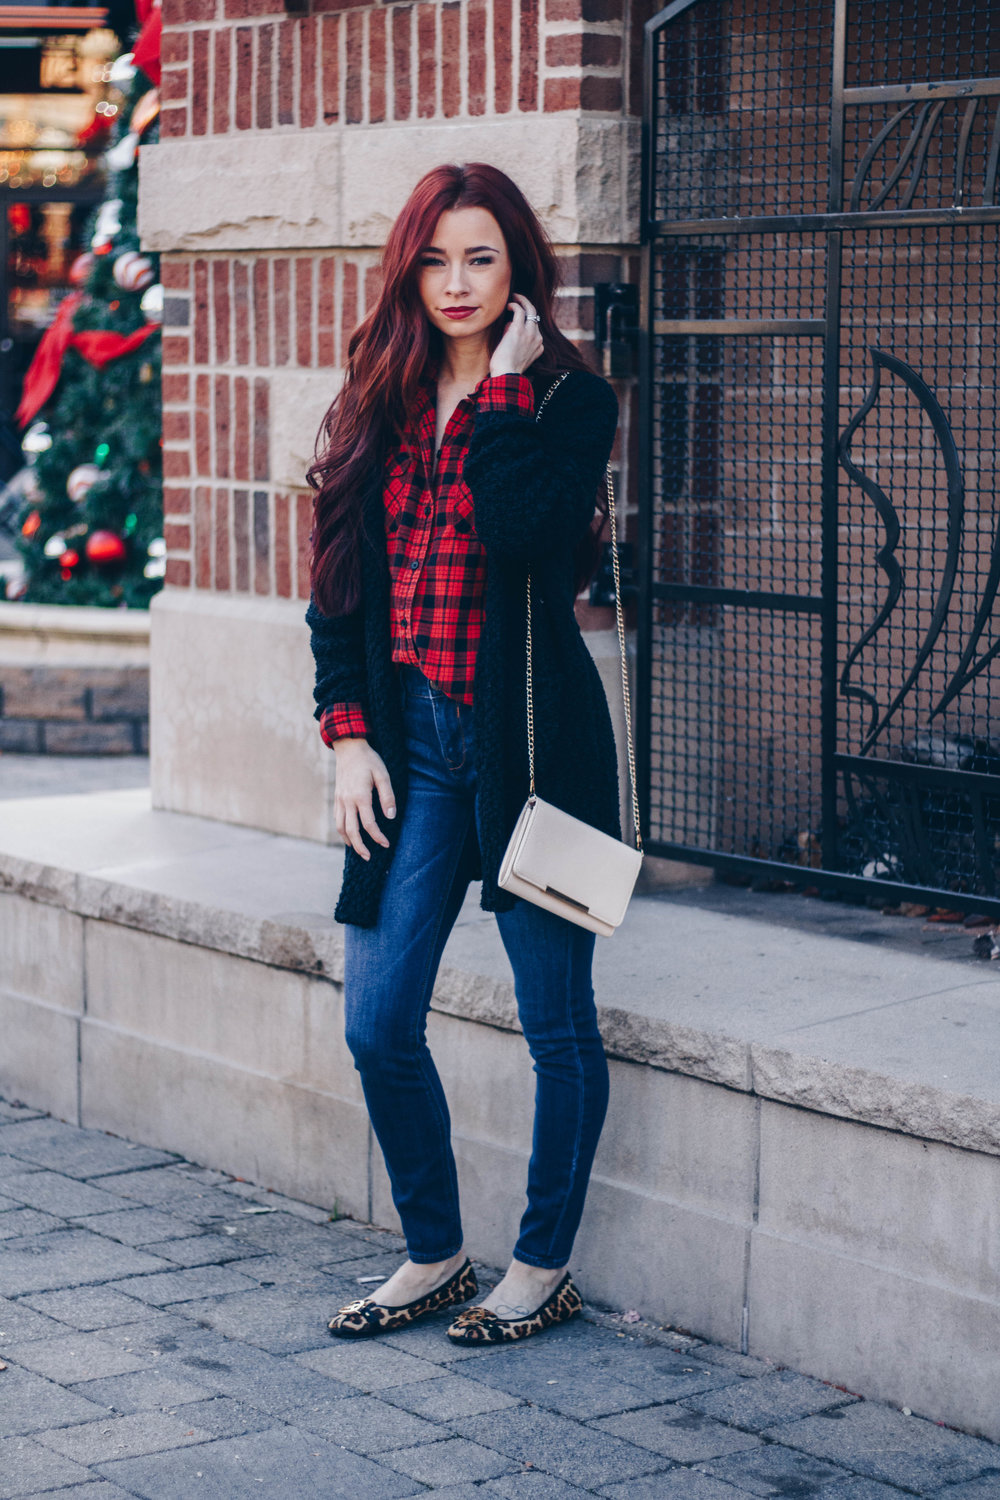 Wearing Red by Indianapolis style blogger Trendy in Indy